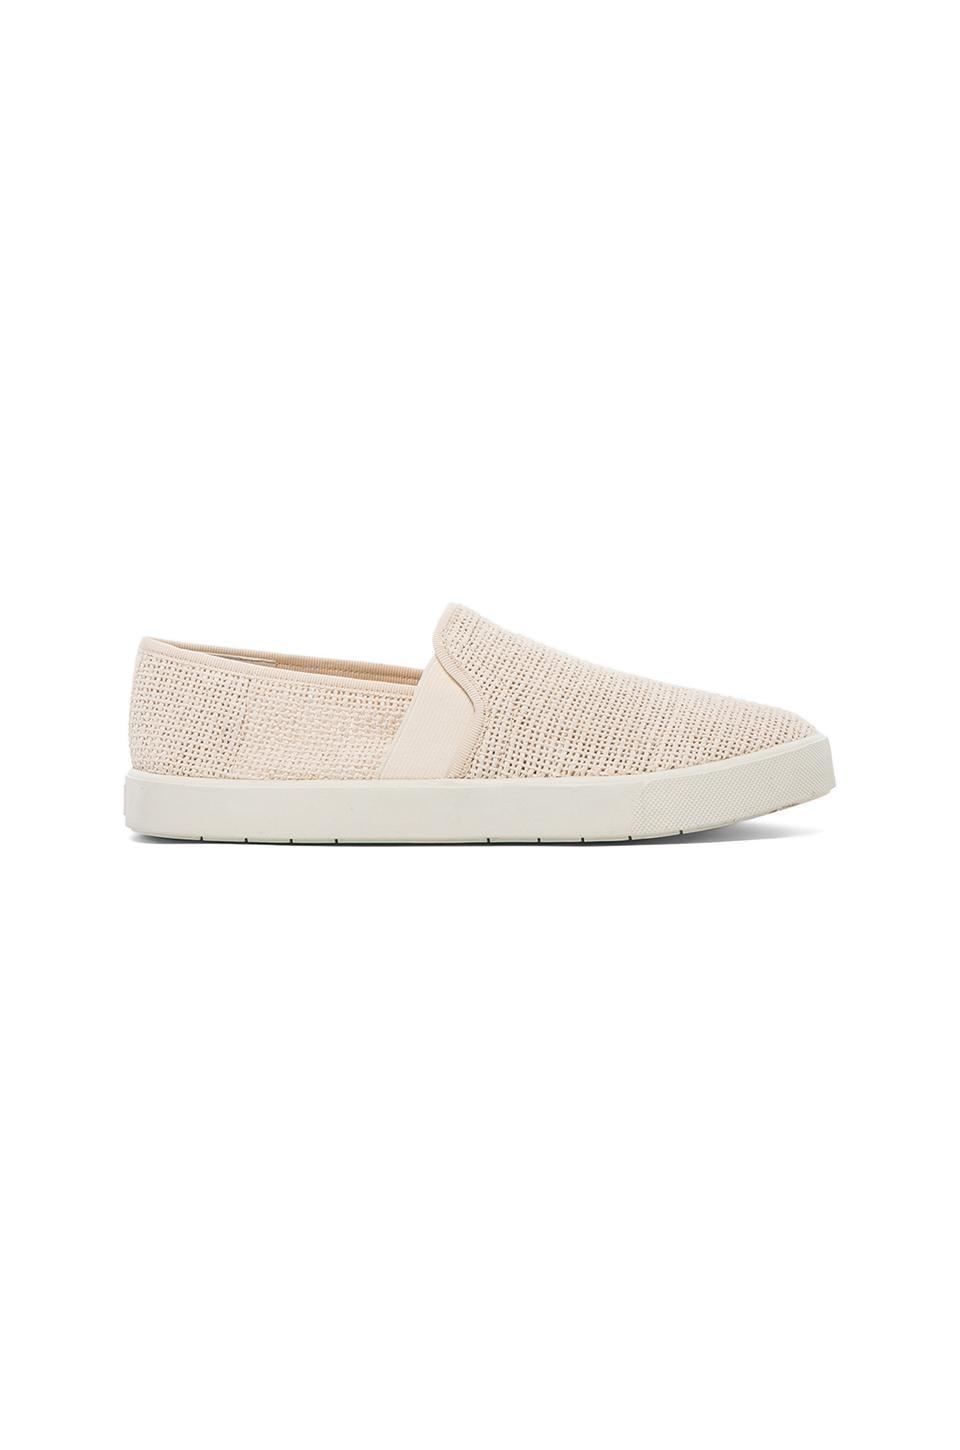 Vince Preston Slip-on in White